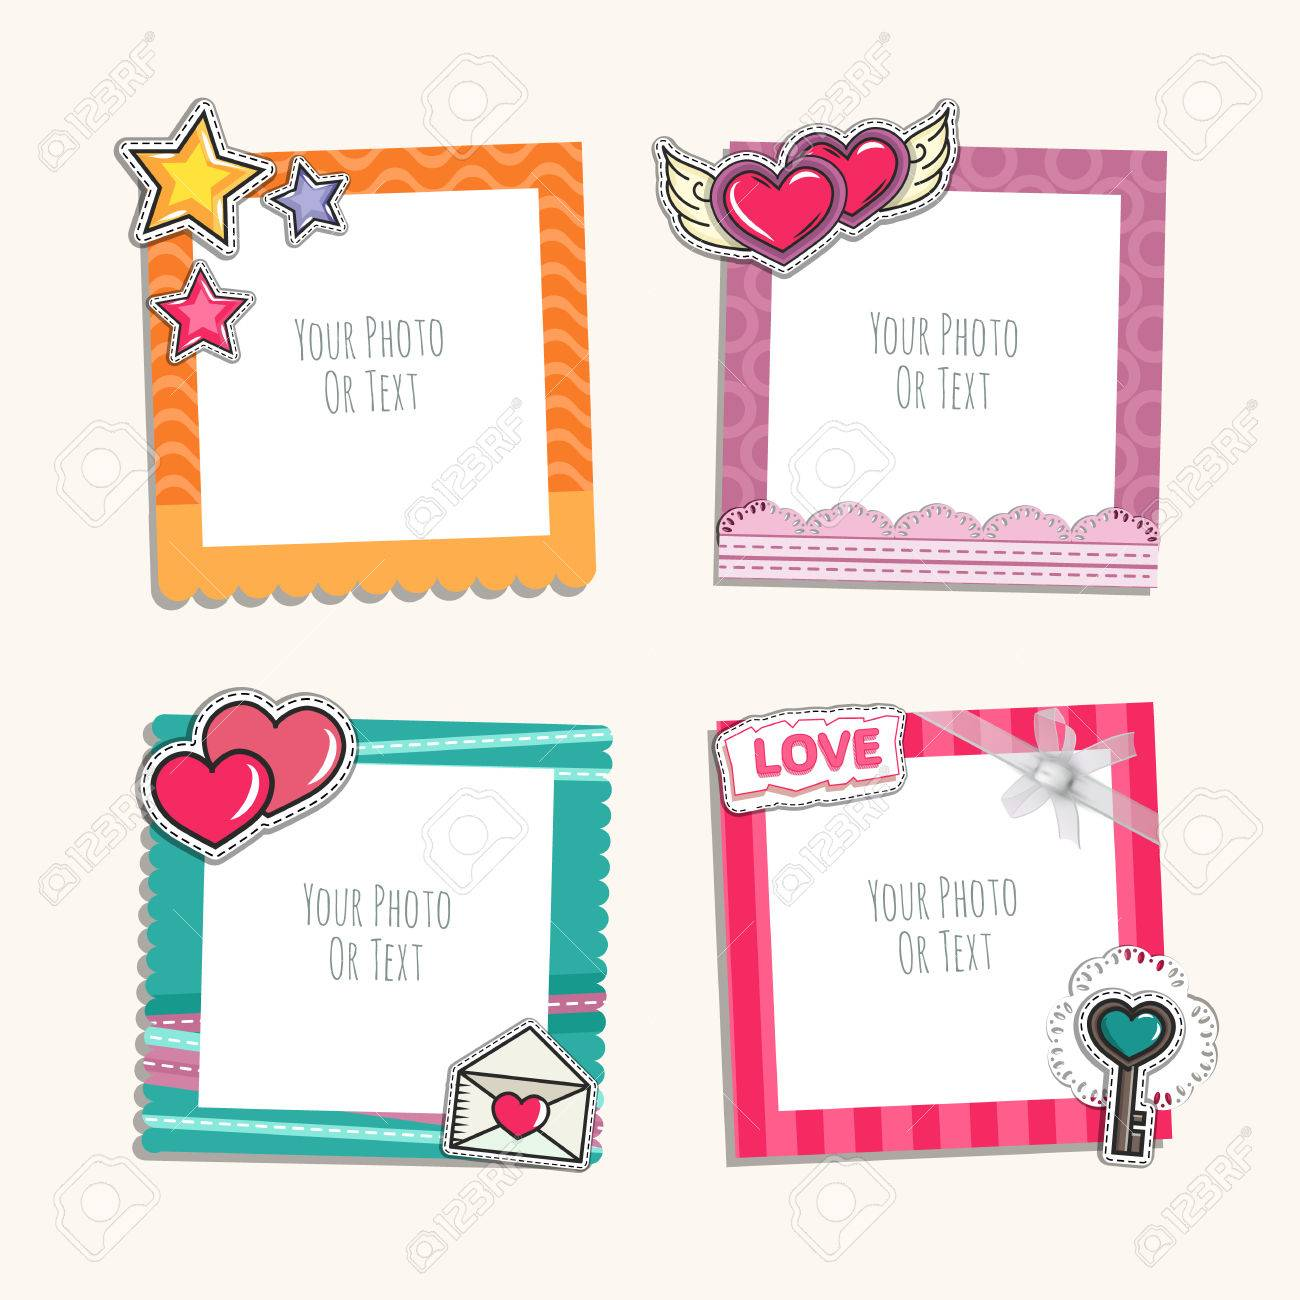 Photo Frame With Heart Love And Romantic Album Template For